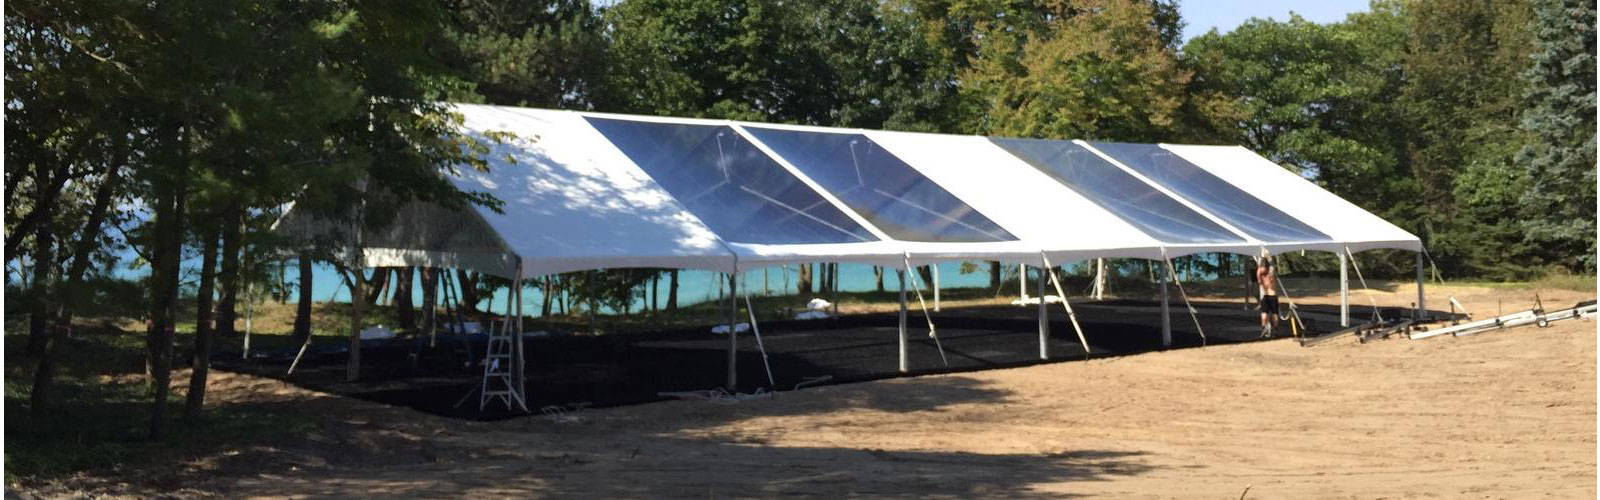 Canopy rentals in Southeastern and Mid Michigan